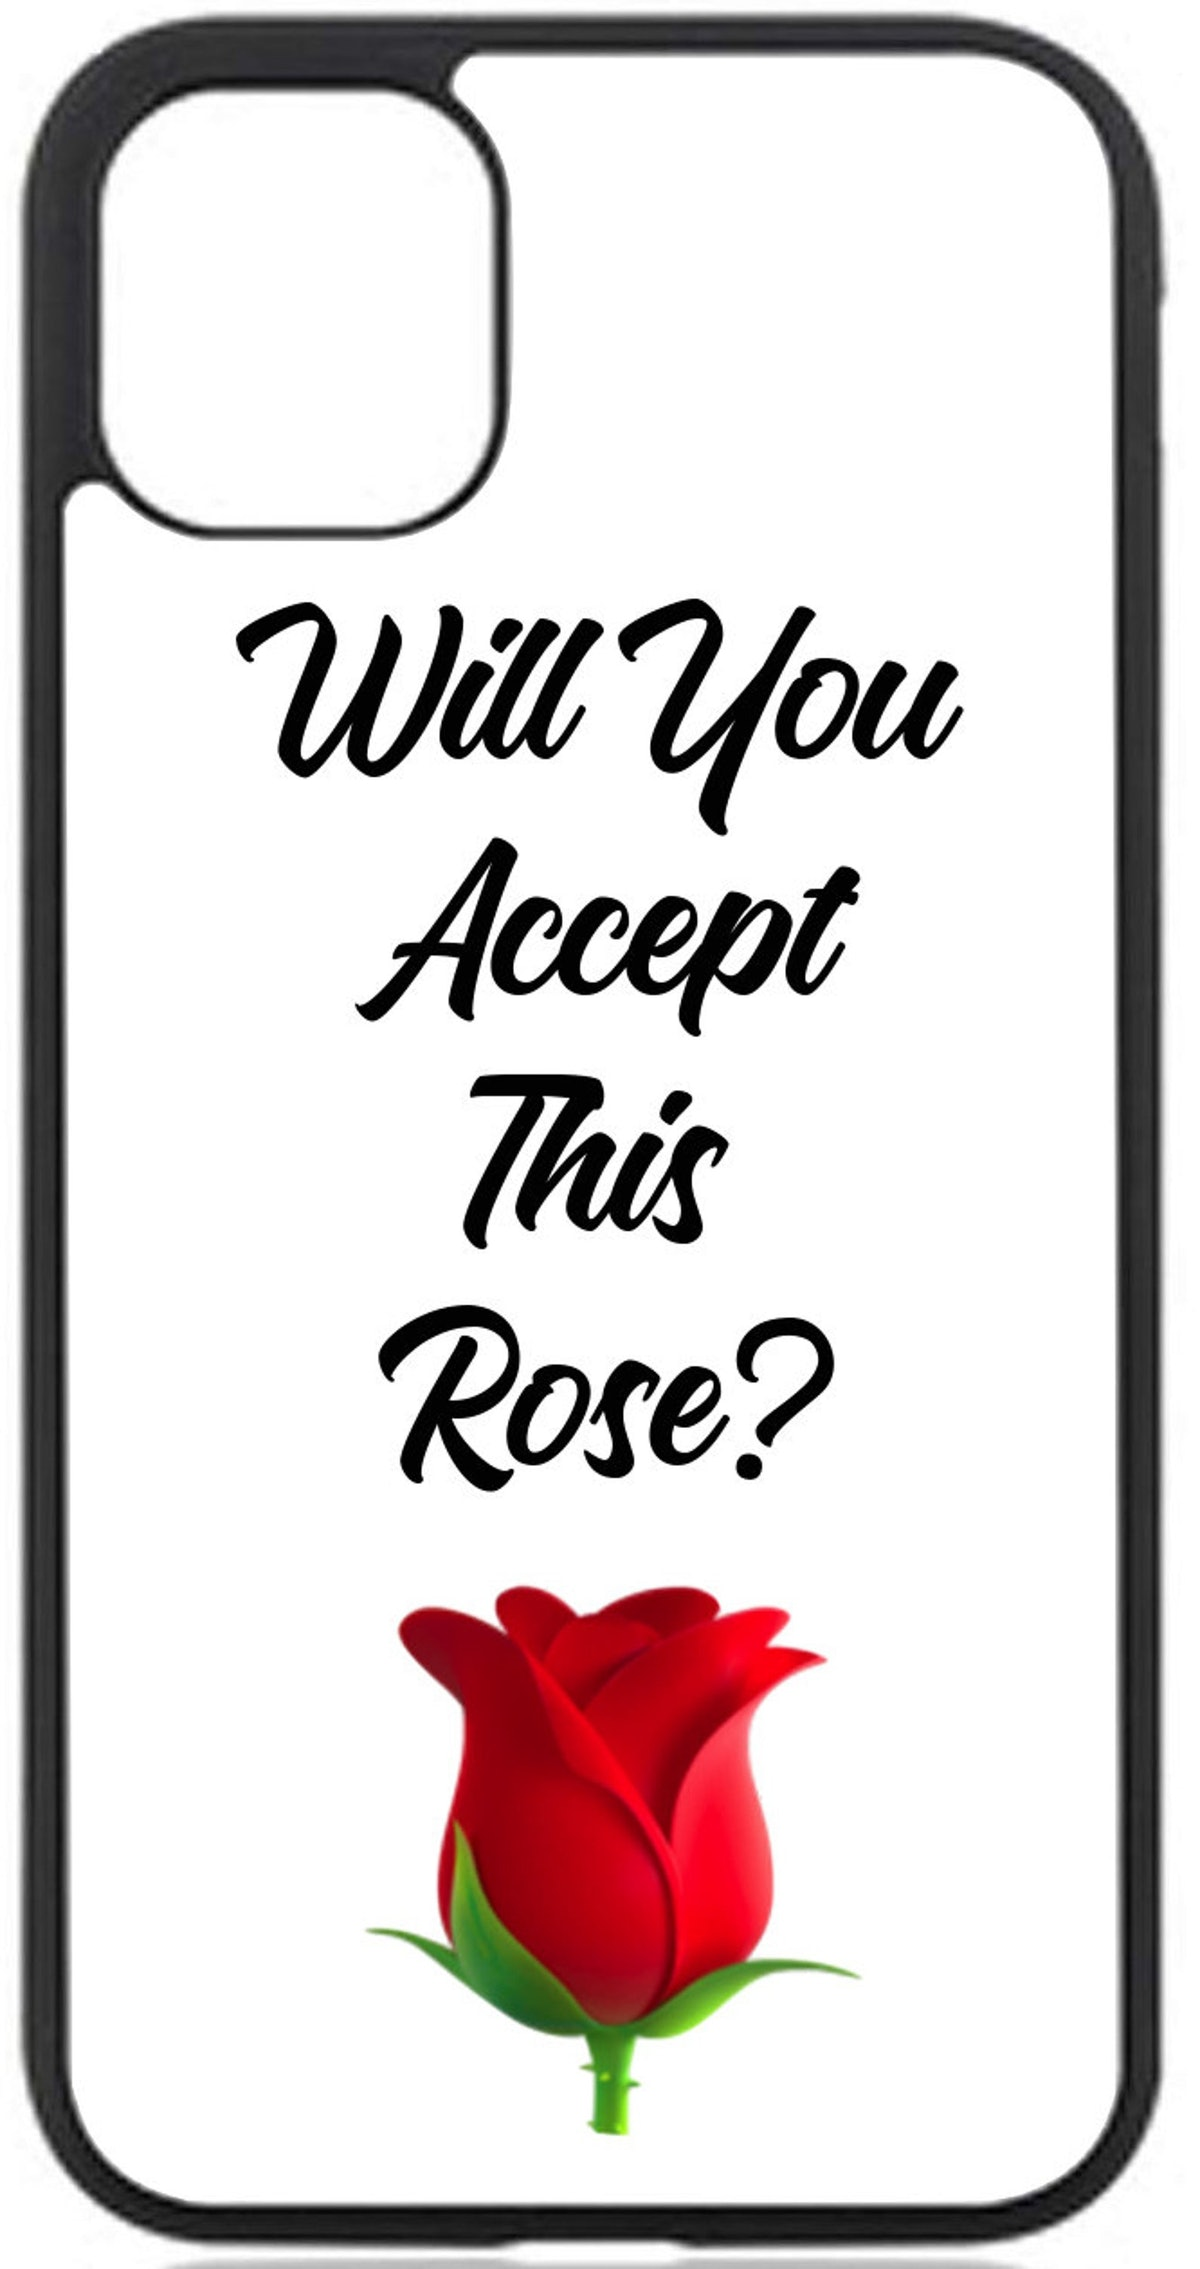 iPhone Case Cover The Bachelor Bachelorette Will You Accept This Rose?